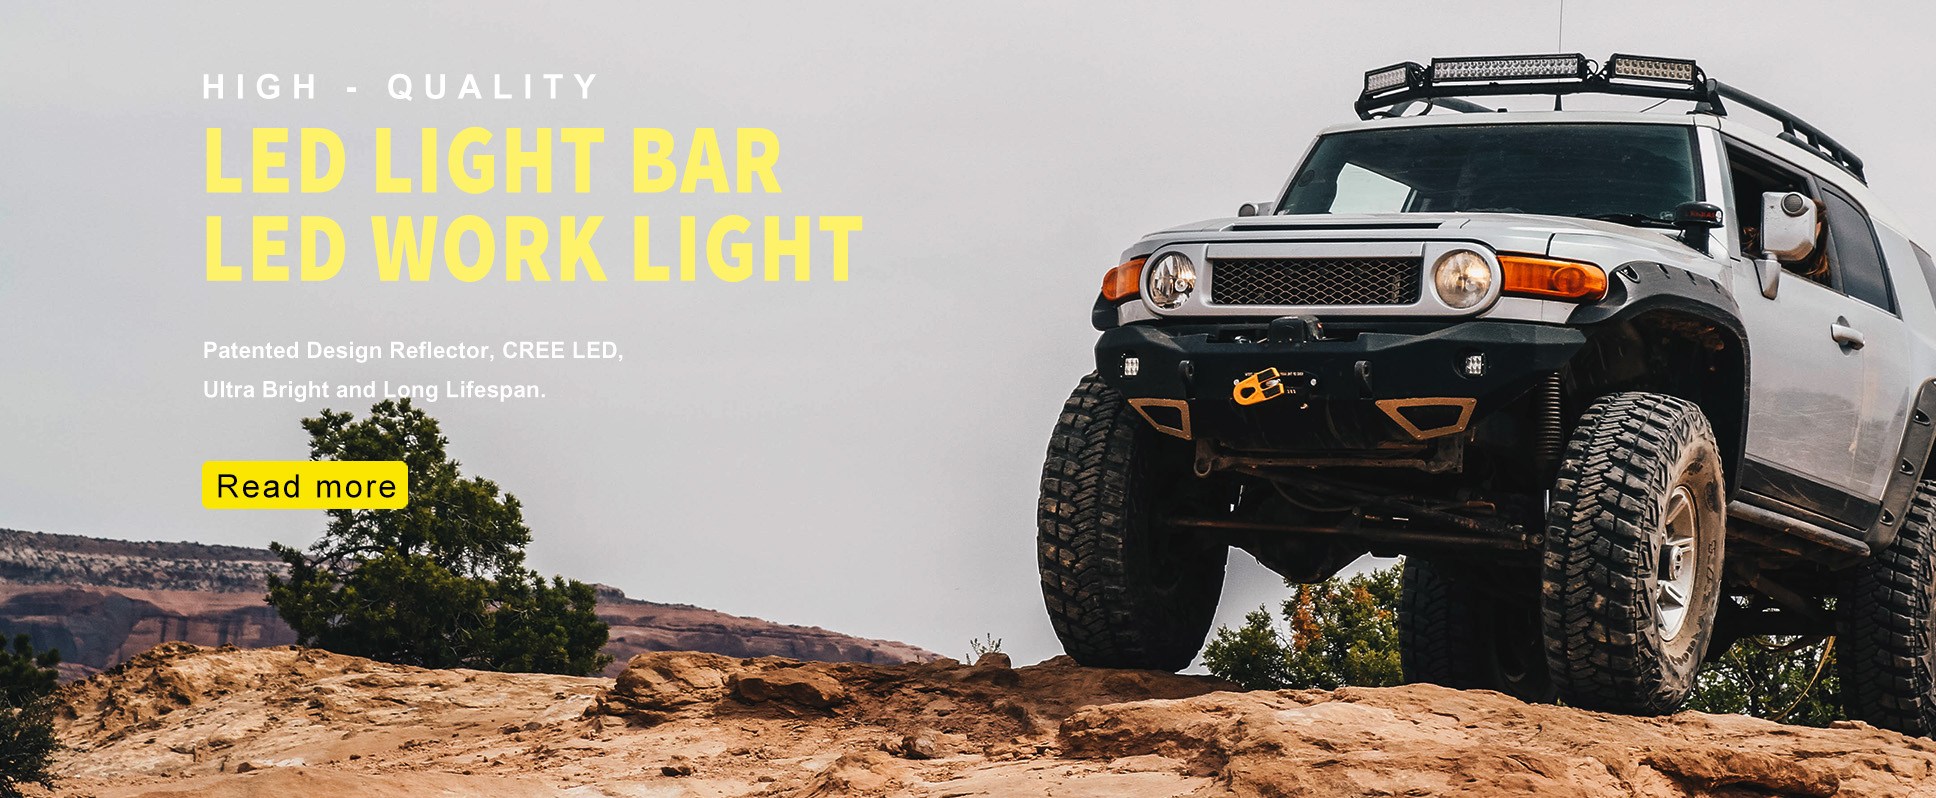 LED Light Bar for Off Road & Truck